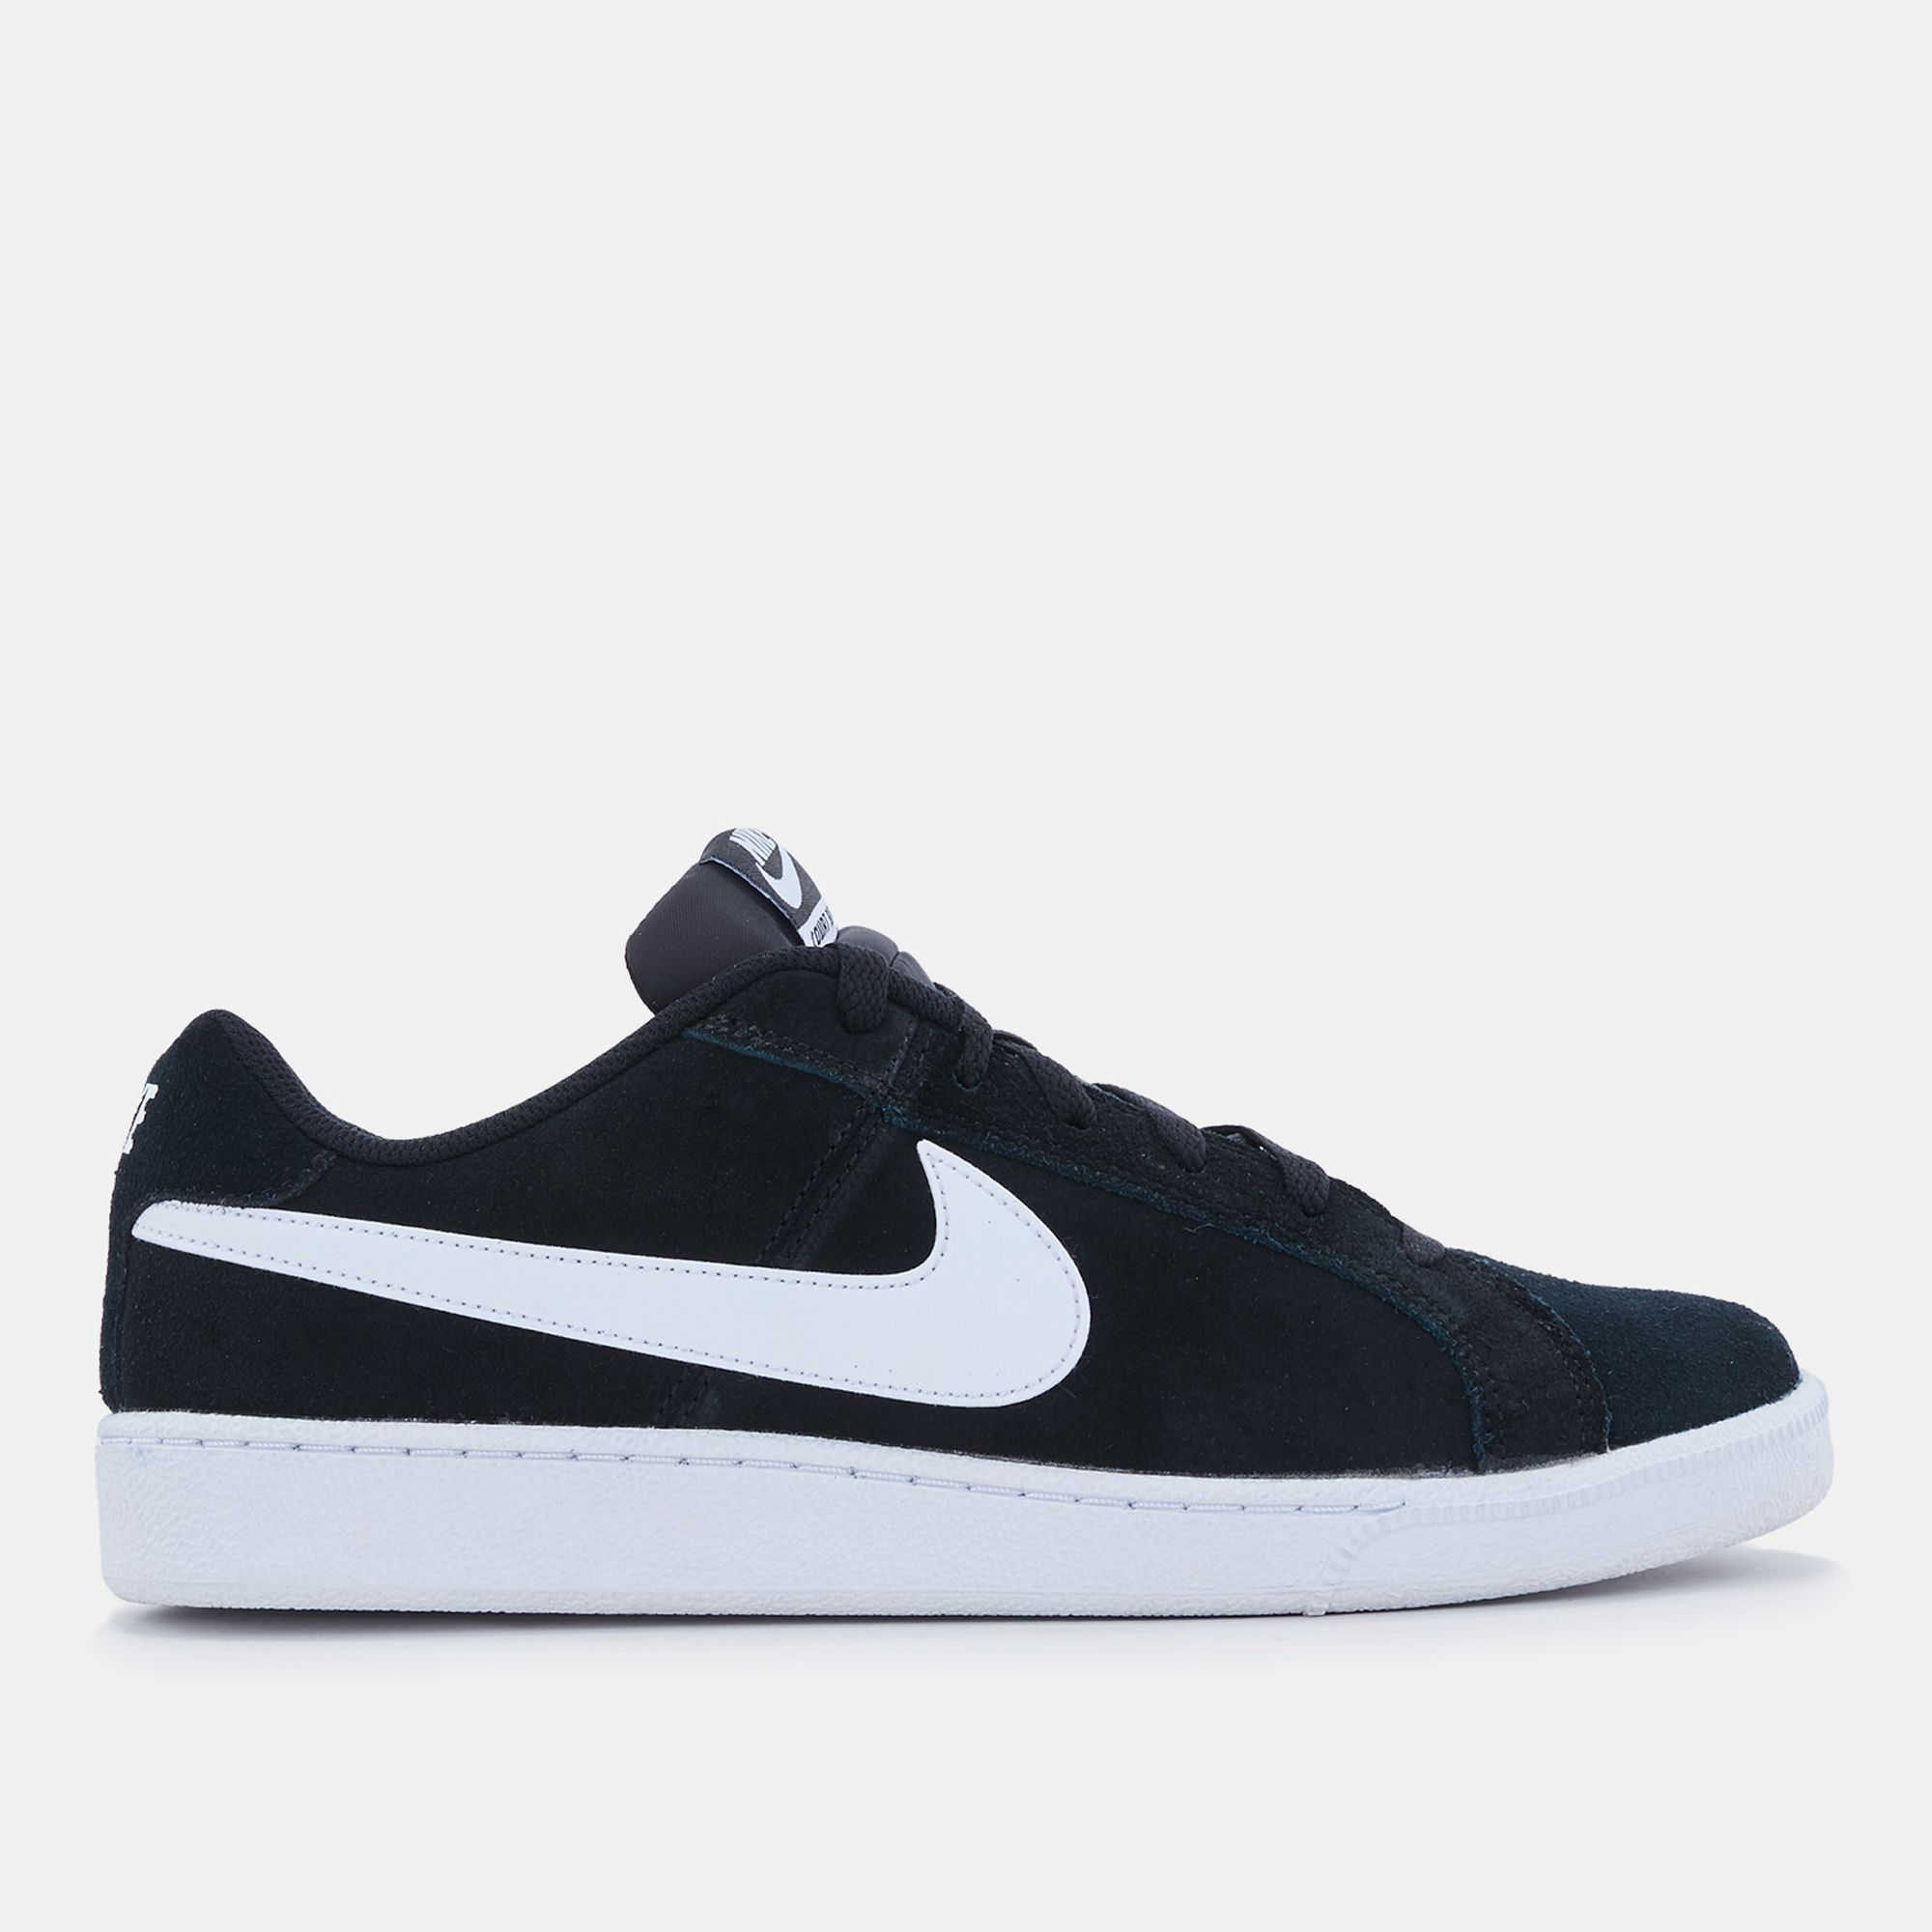 Shop Black Nike Court Royale Suede Shoe for Mens by Nike - 5  b2bd3d3c09d95